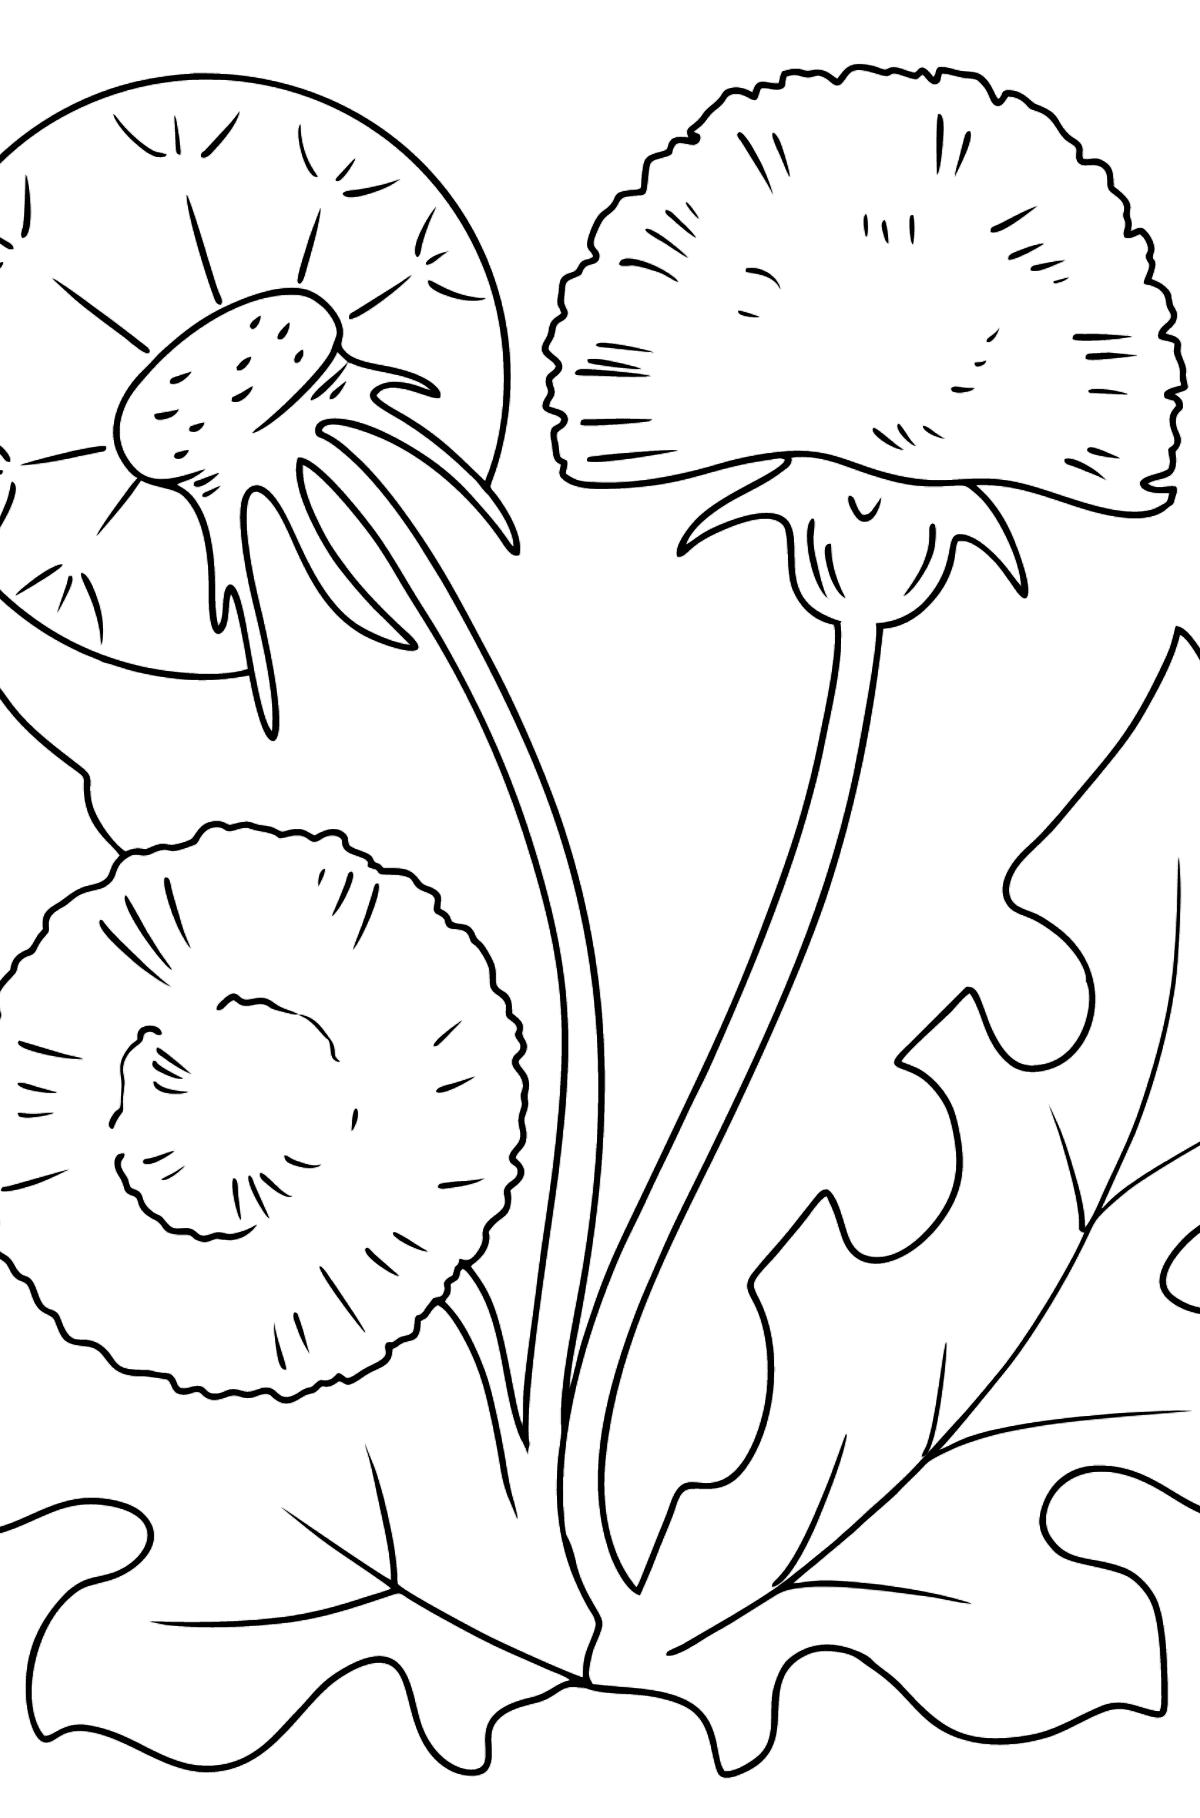 Dandelion Coloring Page - Coloring Pages for Kids